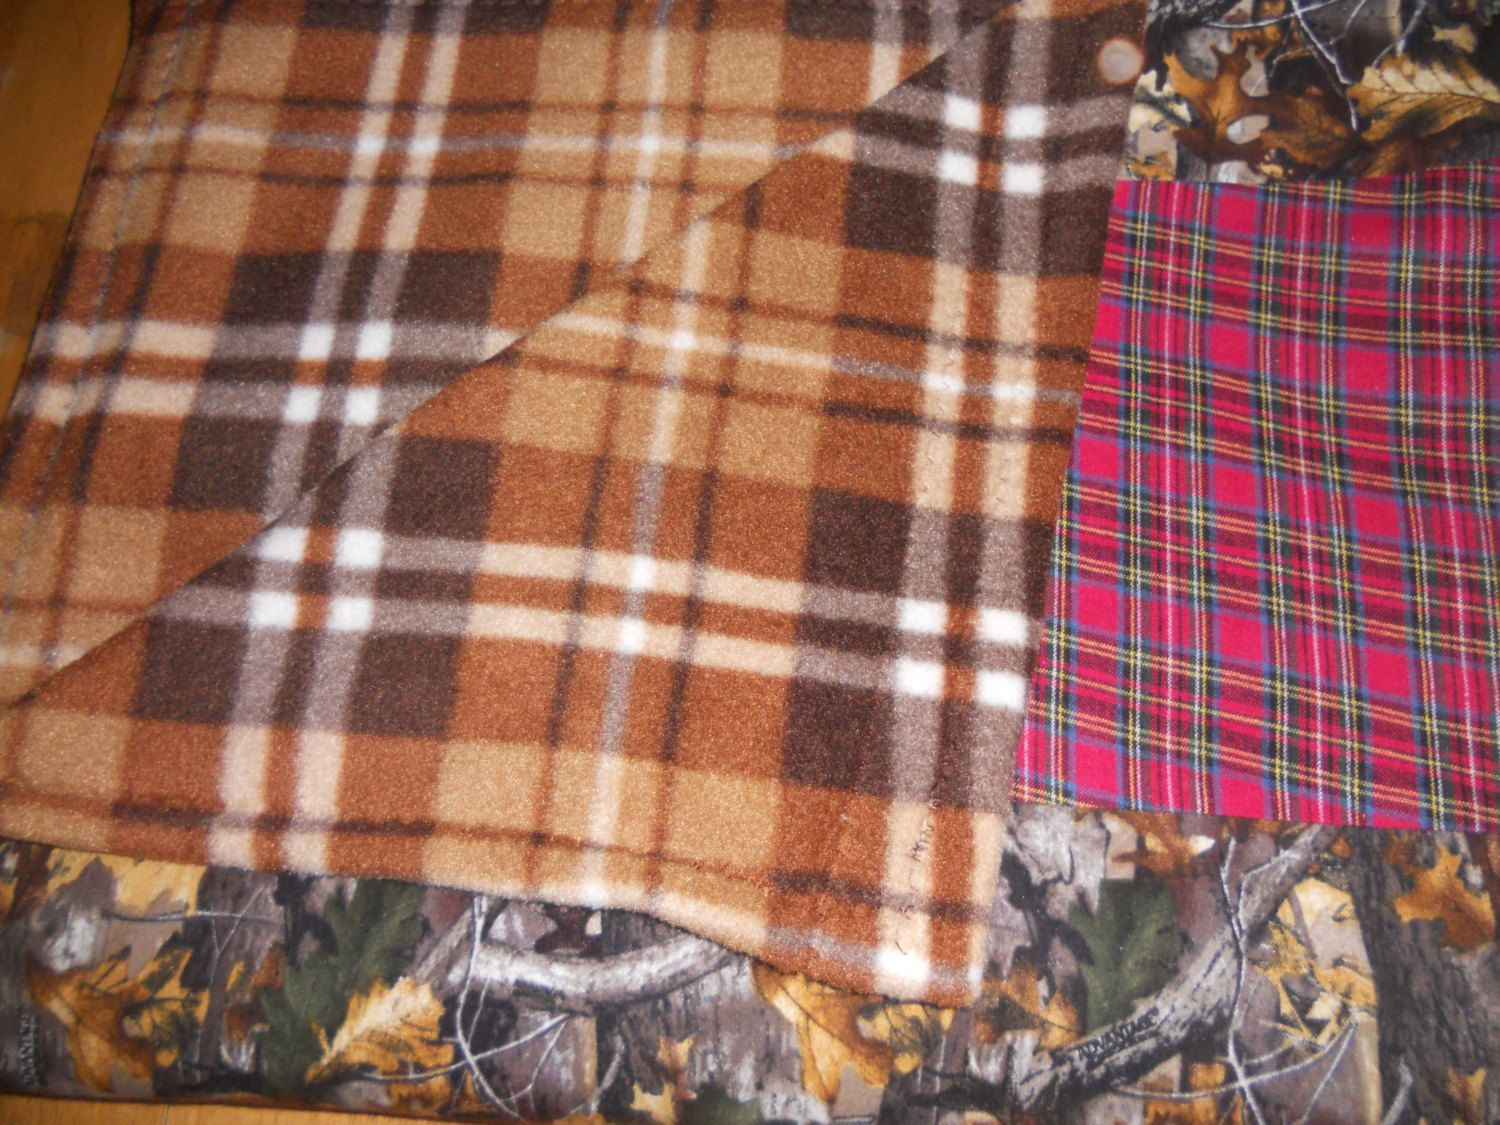 Fleece vs flannel  Flannel Fleece blanket Blanket prefect for campinggoing to a game